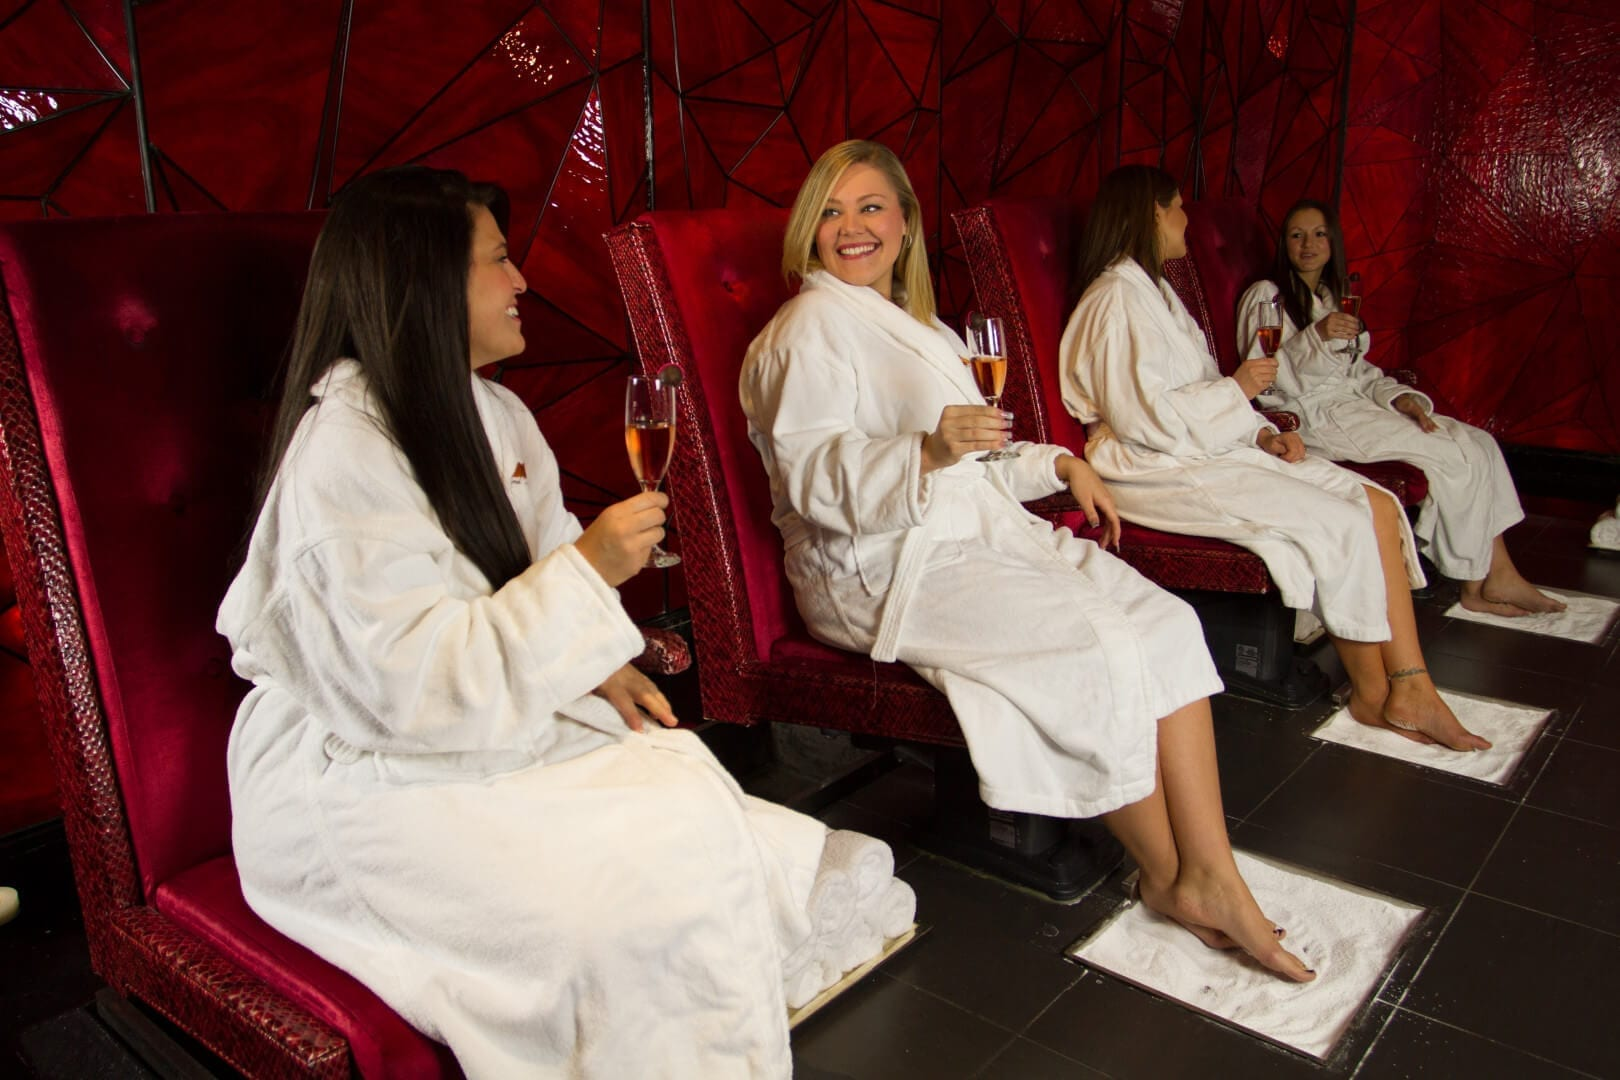 spa day for bachelorette party